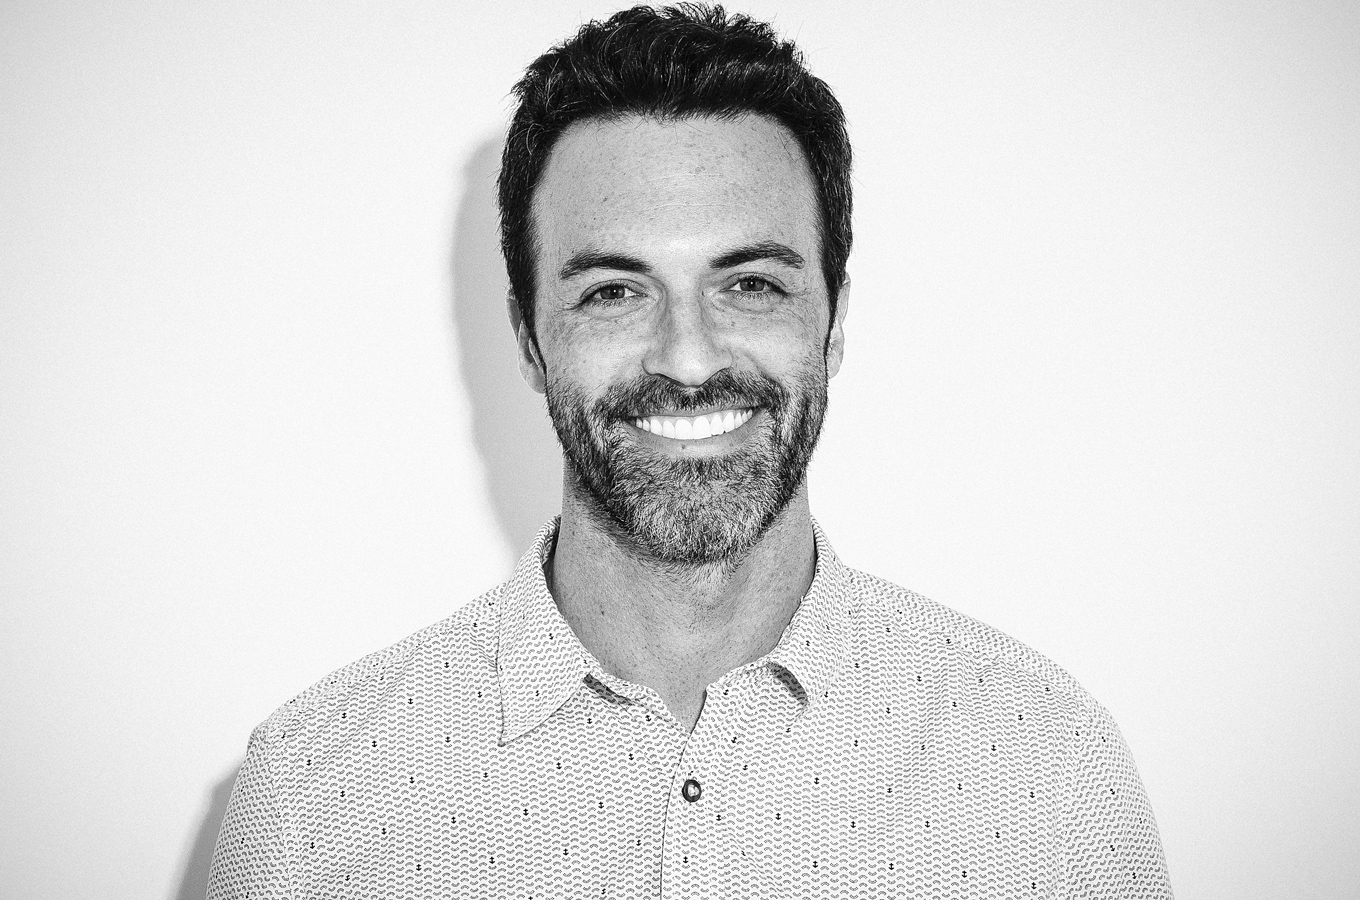 reid scott that 70s showreid scott instagram, reid scott, reid scott actor, reid scott shirtless, reid scott imdb, reid scott veep, reid scott wife, reid scott elspeth keller, reid scott and ross, reid scott twitter, reid scott gay, reid scott net worth, reid scott ben feldman, reid scott interview, reid scott leaving veep, reid scott wedding, reid scott that 70s show, reid scott movies and tv shows